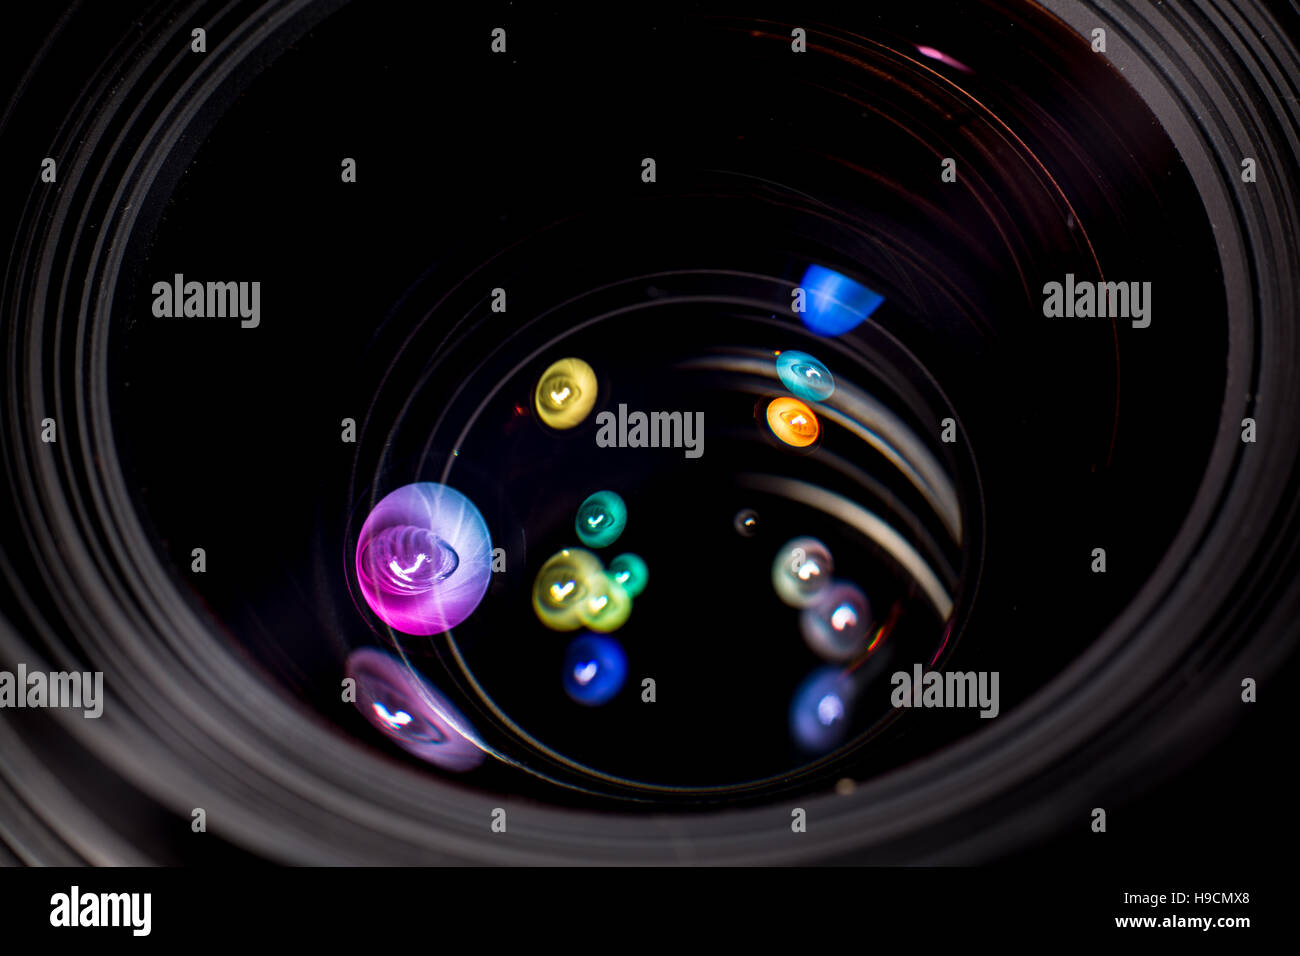 Colorful light shapes in lens - Stock Image